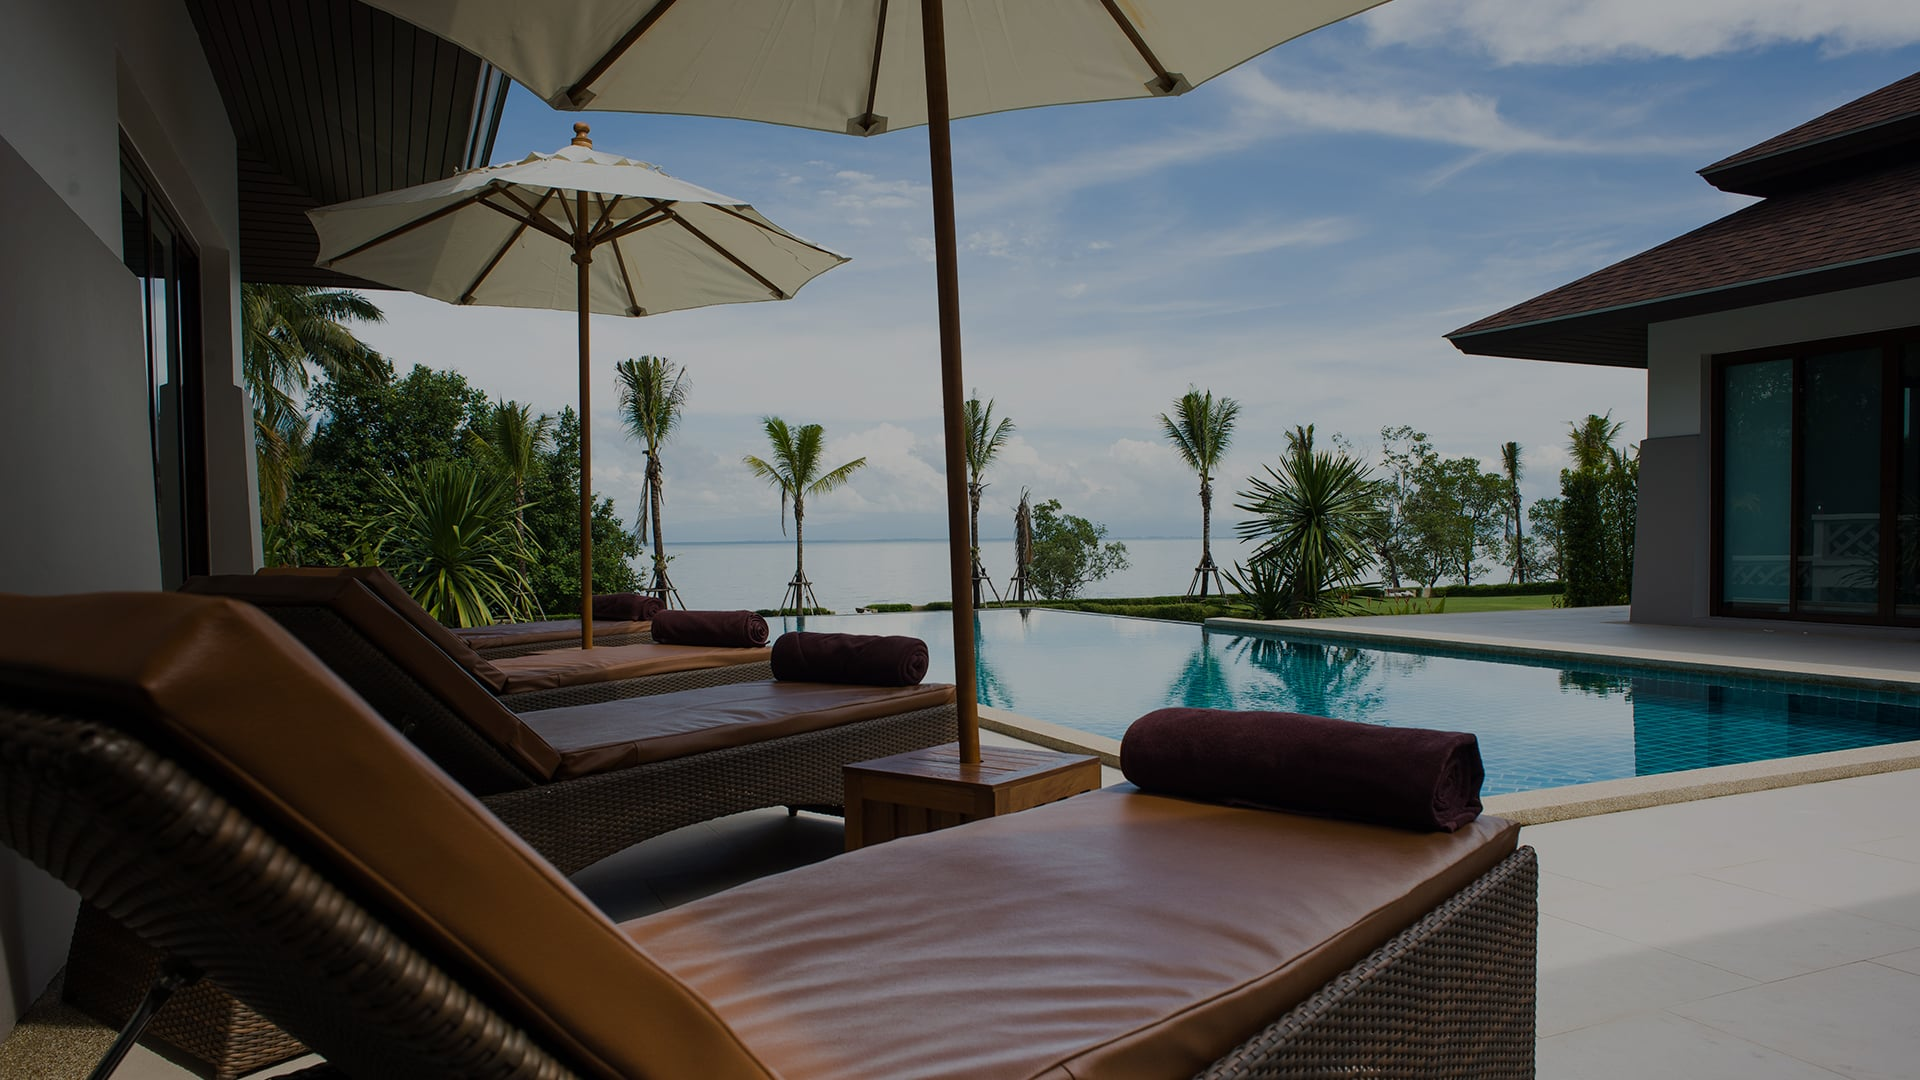 Luxury private pool villa in Koh Chang in Thailand1